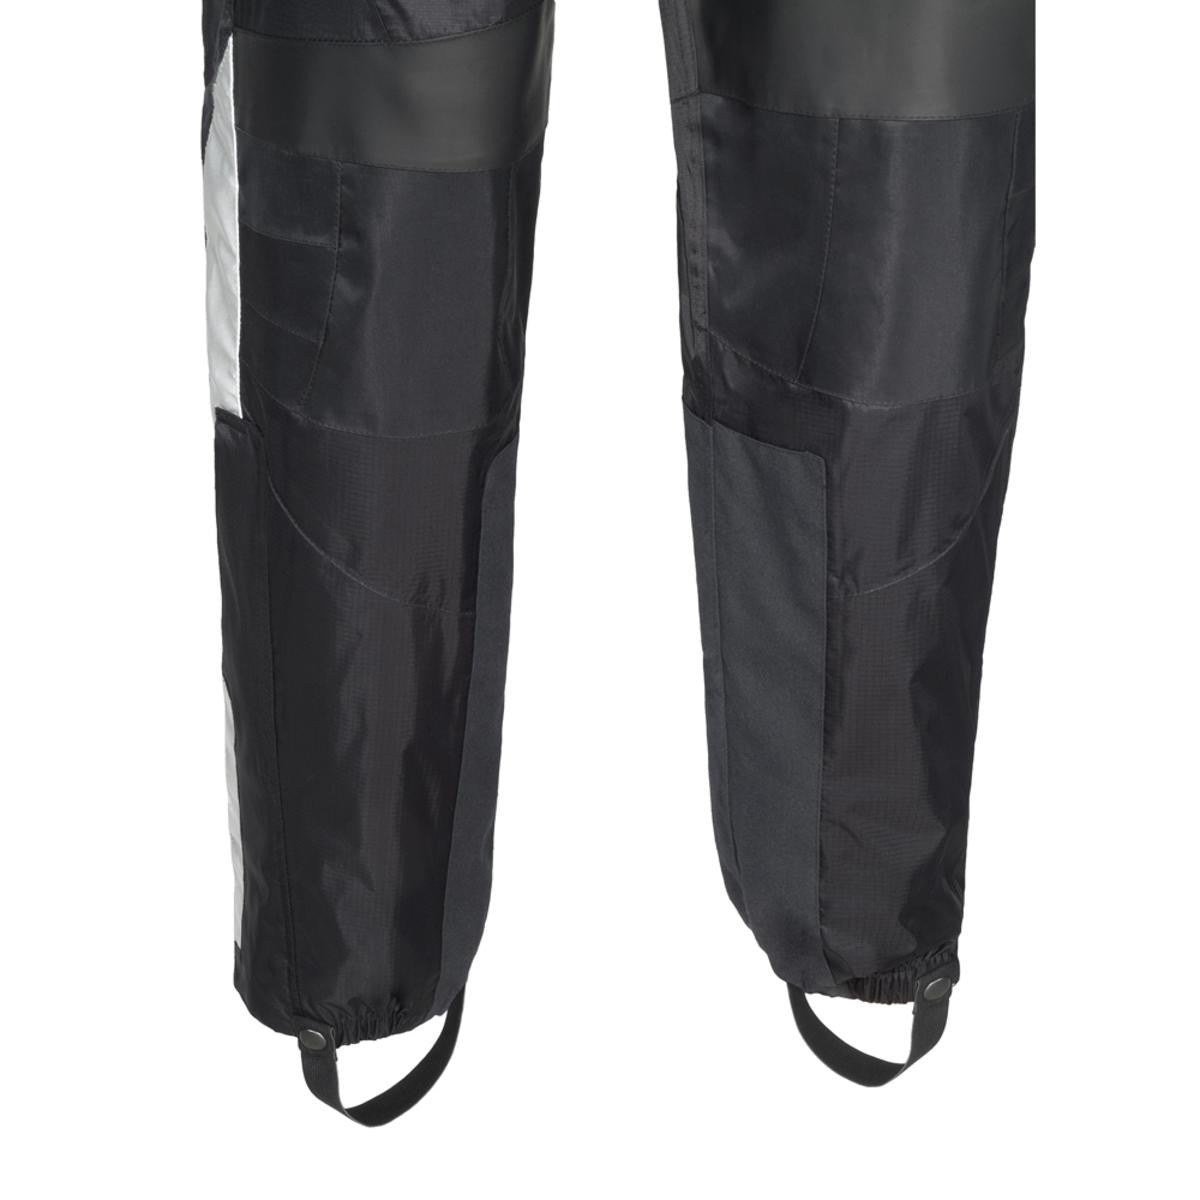 TourMaster Women's Sentinel 2.0 Rainsuit Pant